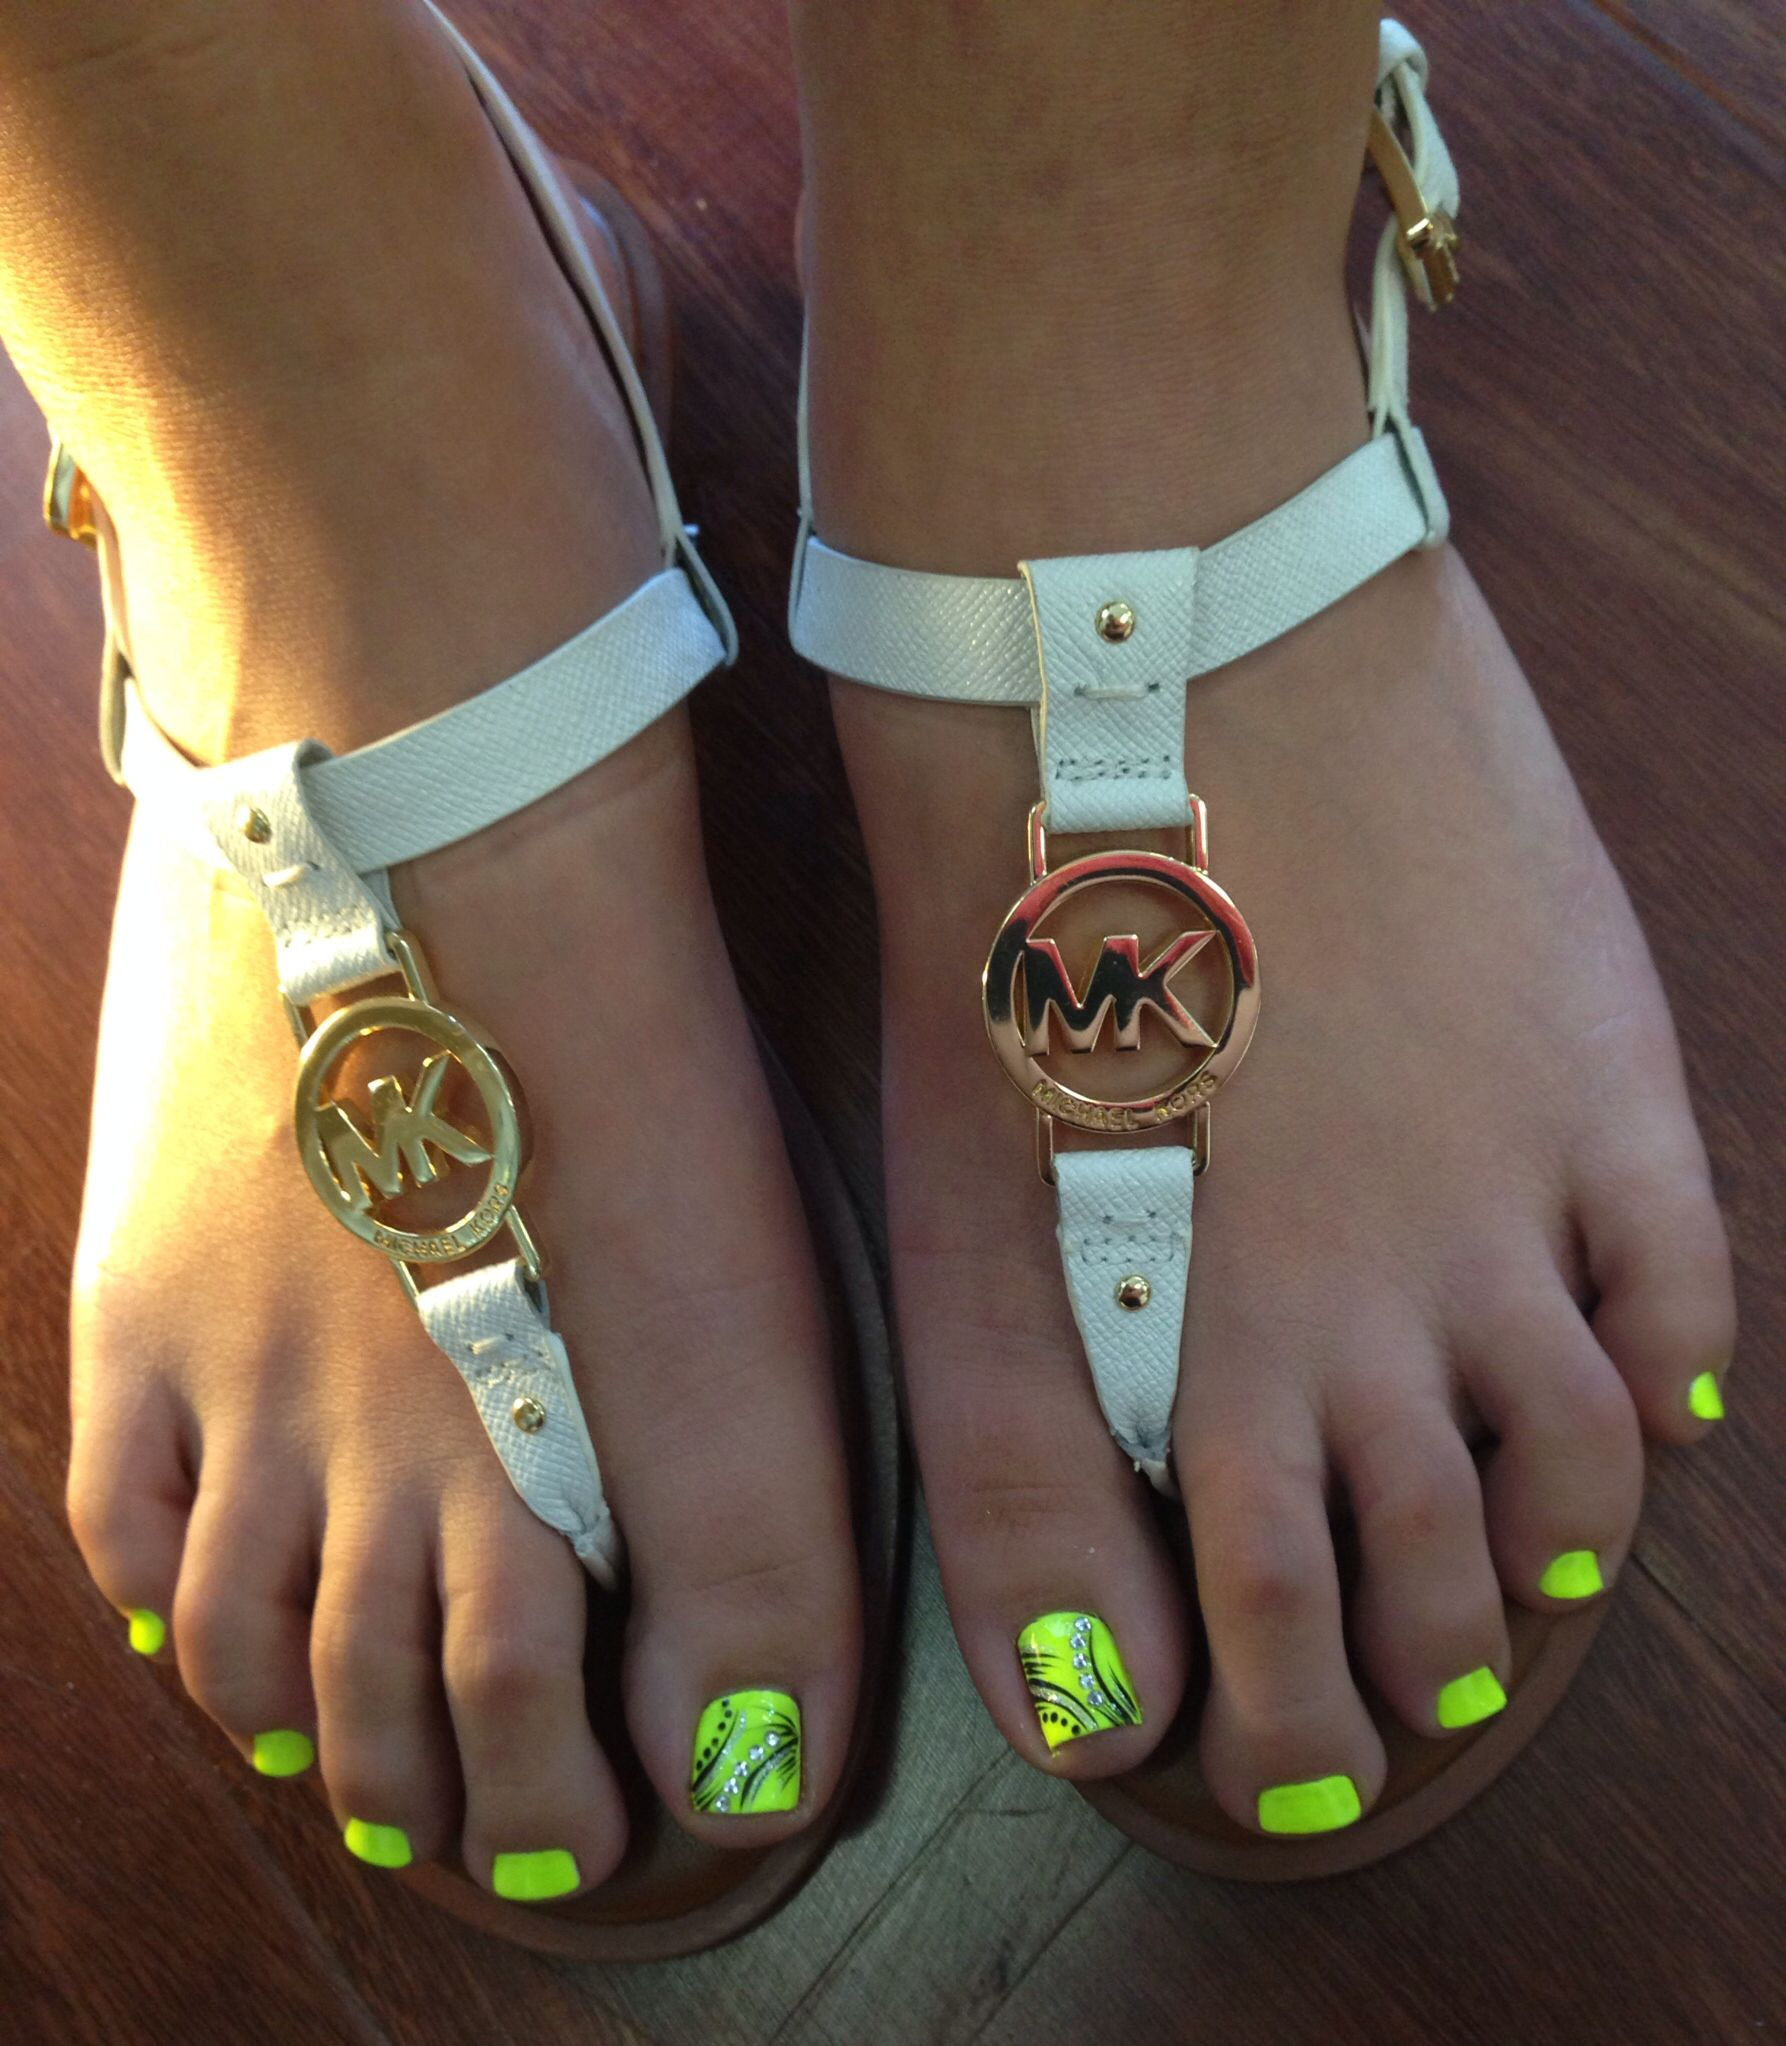 Summer Toe Nails Neon Lime Green With Black Detail Design Green Toe Nails Toe Nails Summer Toe Nails